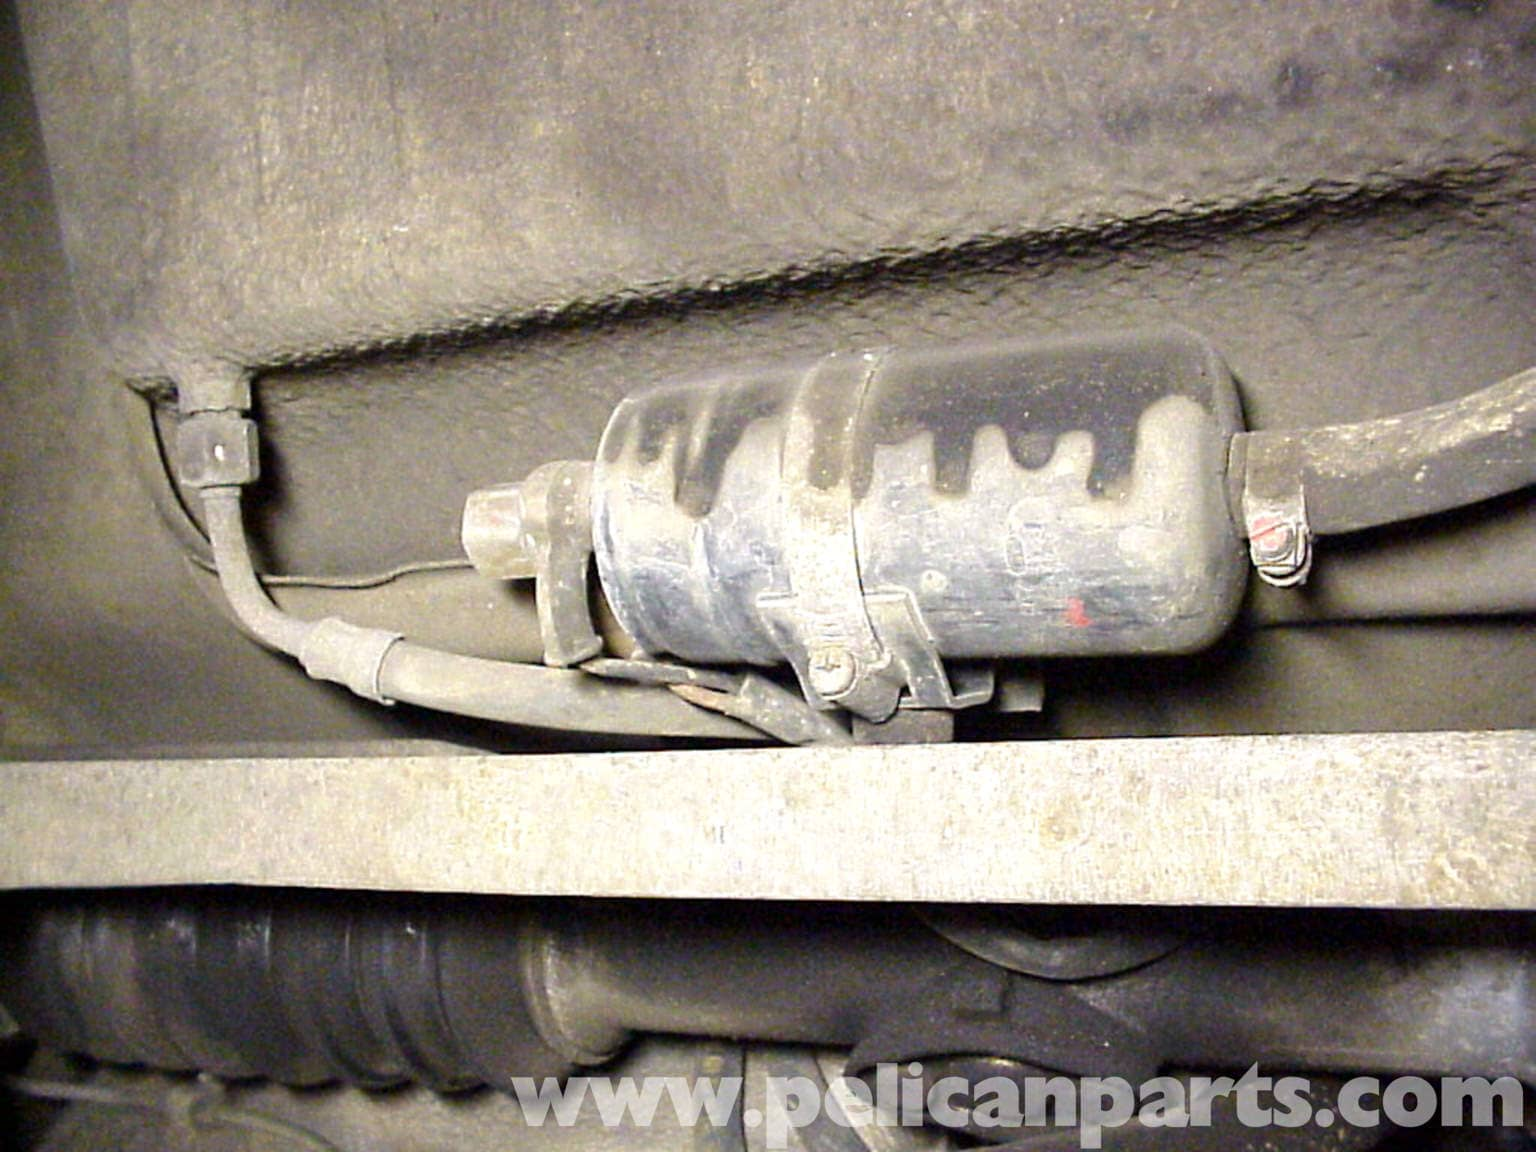 2002 porsche 911 wiring diagram porsche 911 fuel pump replacement | 911 (1965-89) - 930 ...